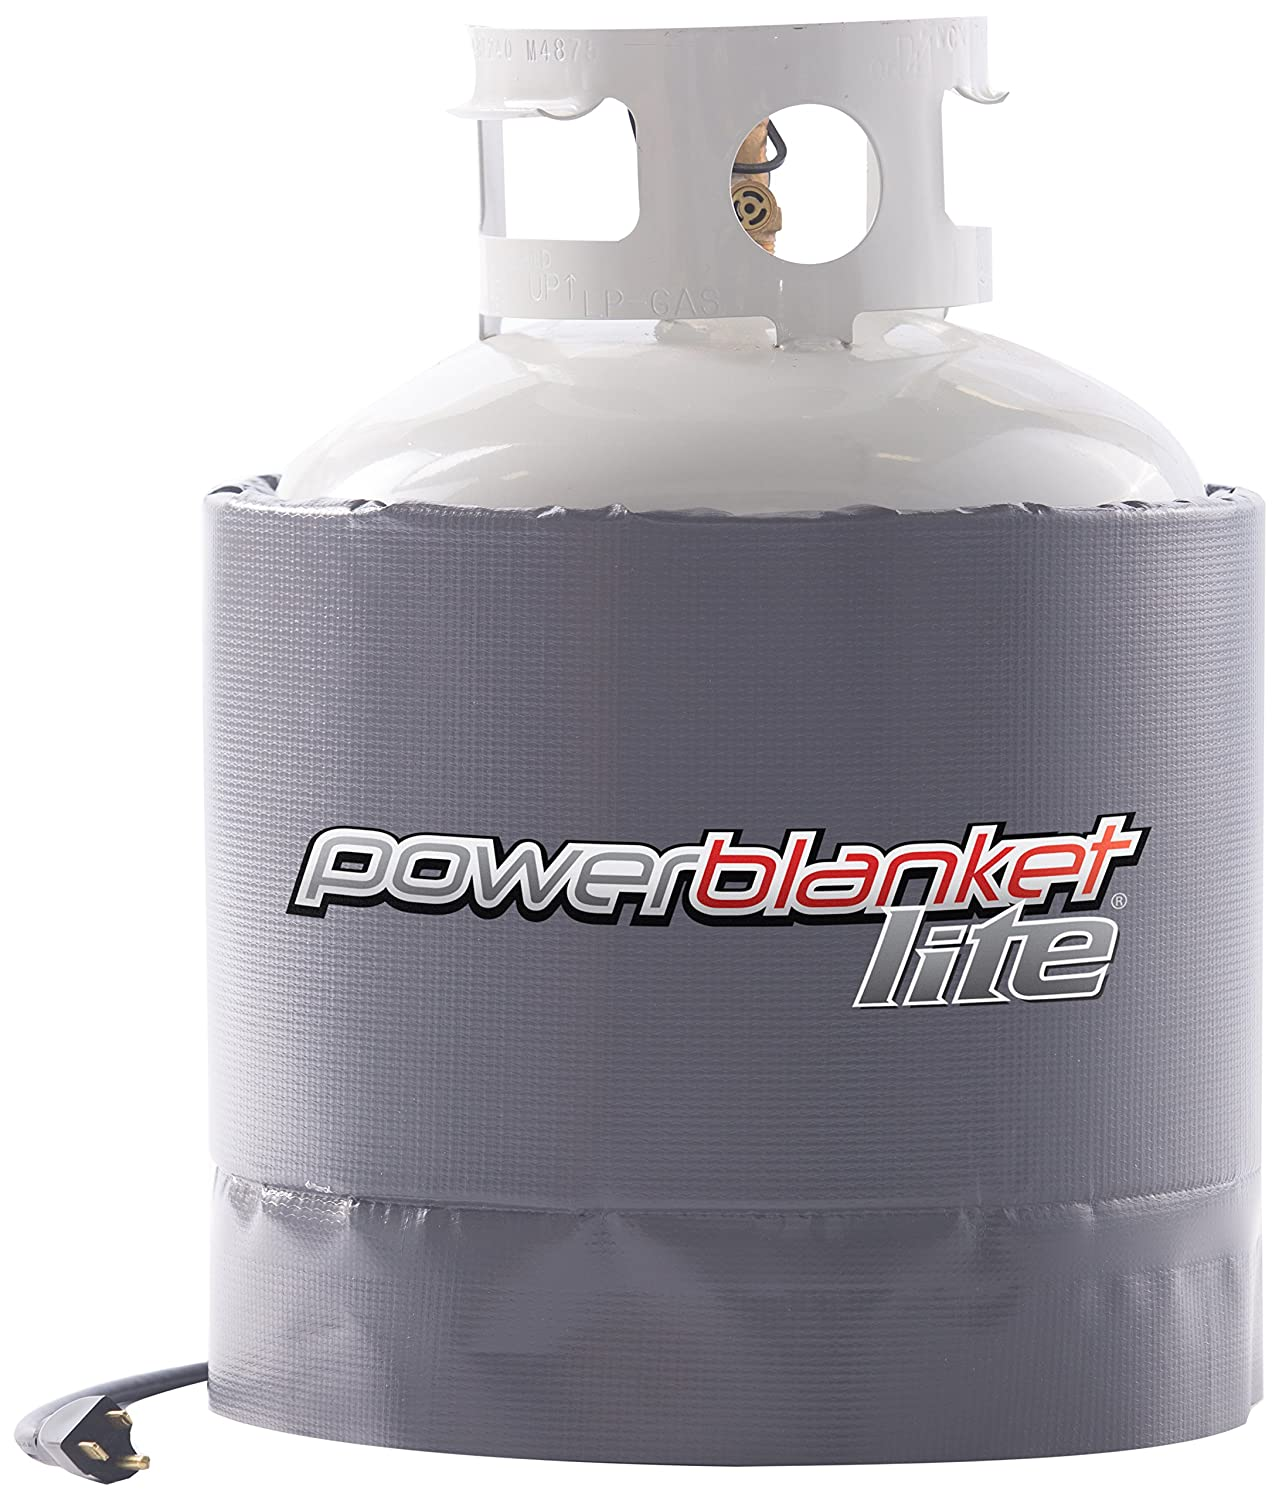 Powerblanket PBL20 Gas Cylinder Heater (Propane), 20 lb, Charcoal Gray